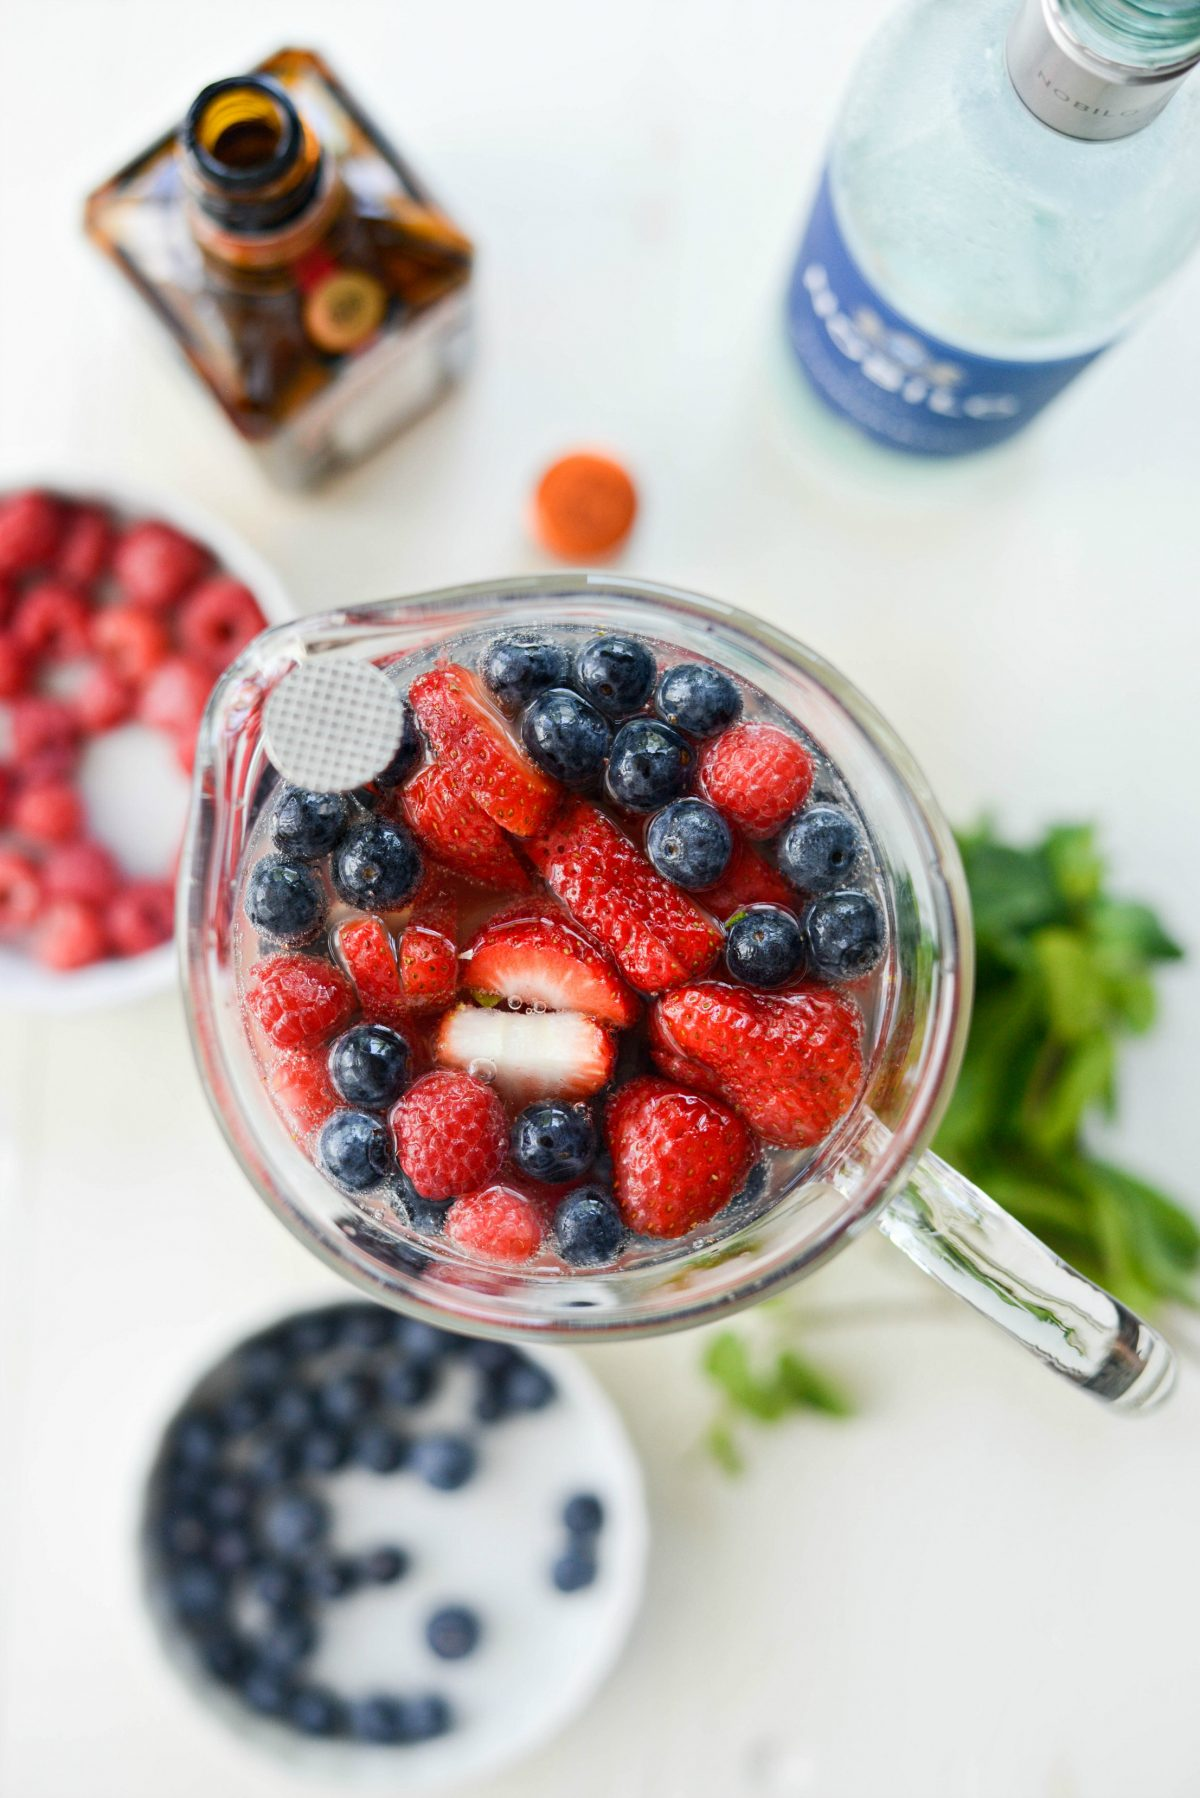 stir the pitcher of Red, White and Blue Sangria